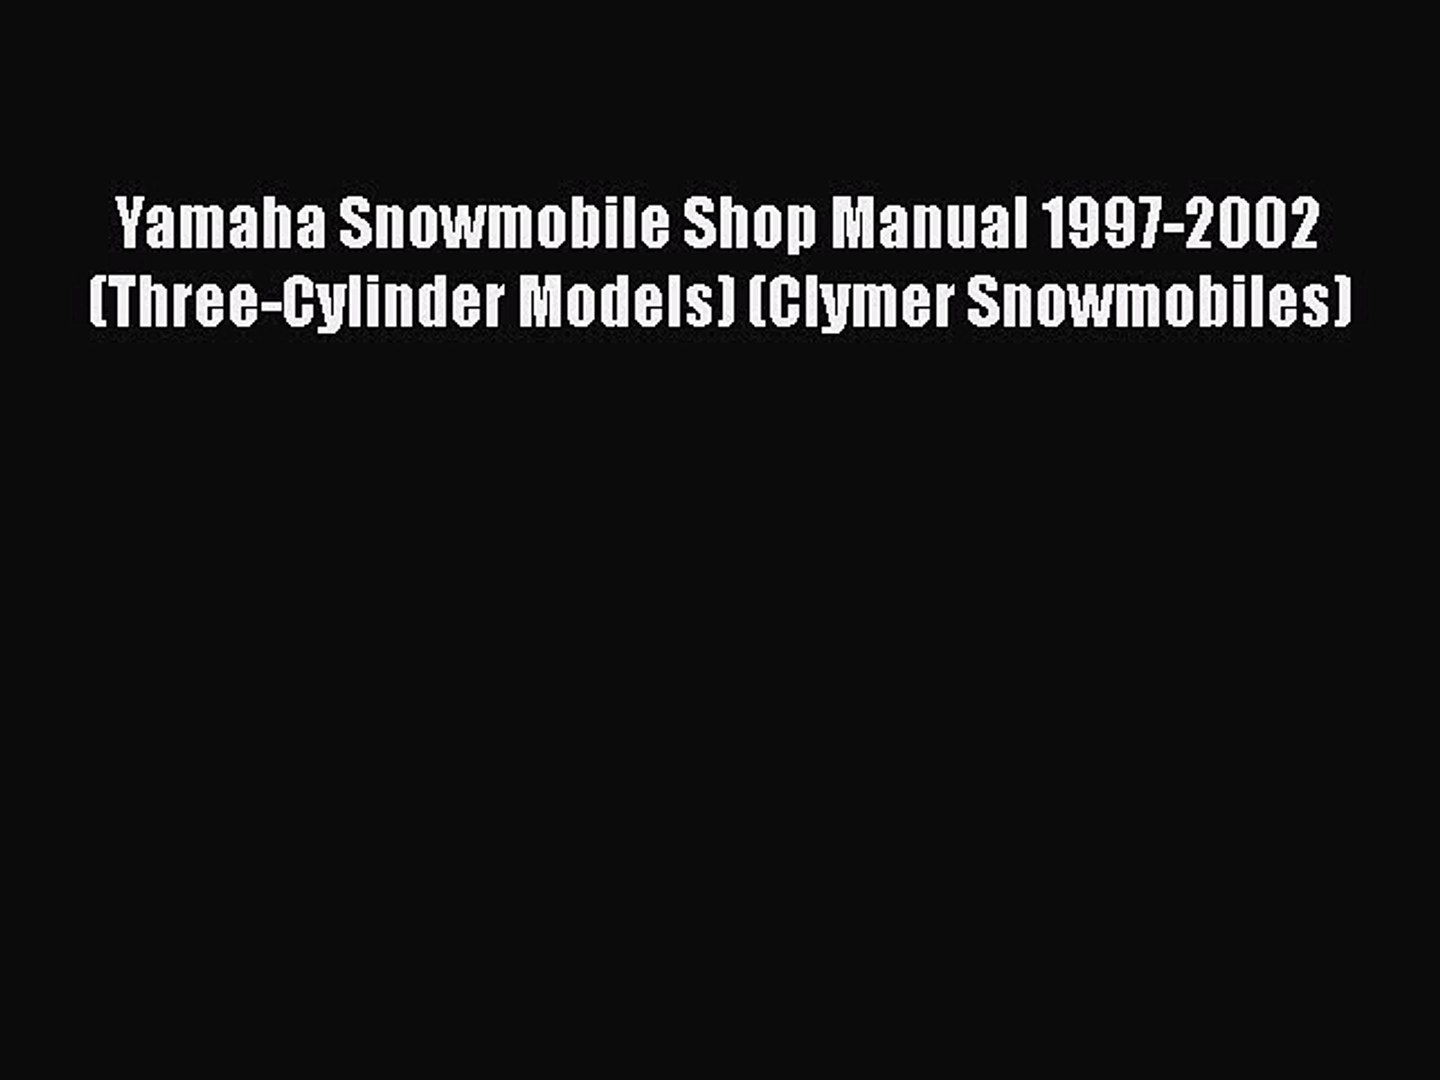 Download Yamaha Snowmobile Shop Manual 1997-2002 (Three-Cylinder Models)  (Clymer Snowmobiles)